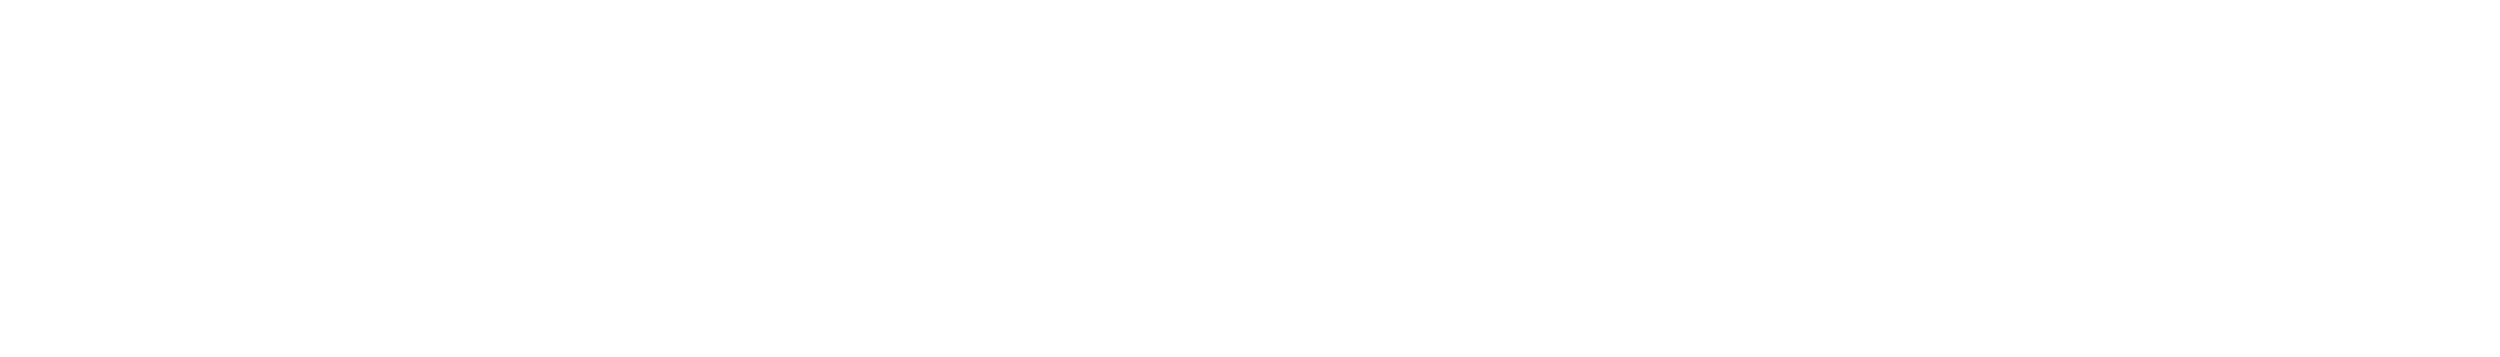 promo_2020.png